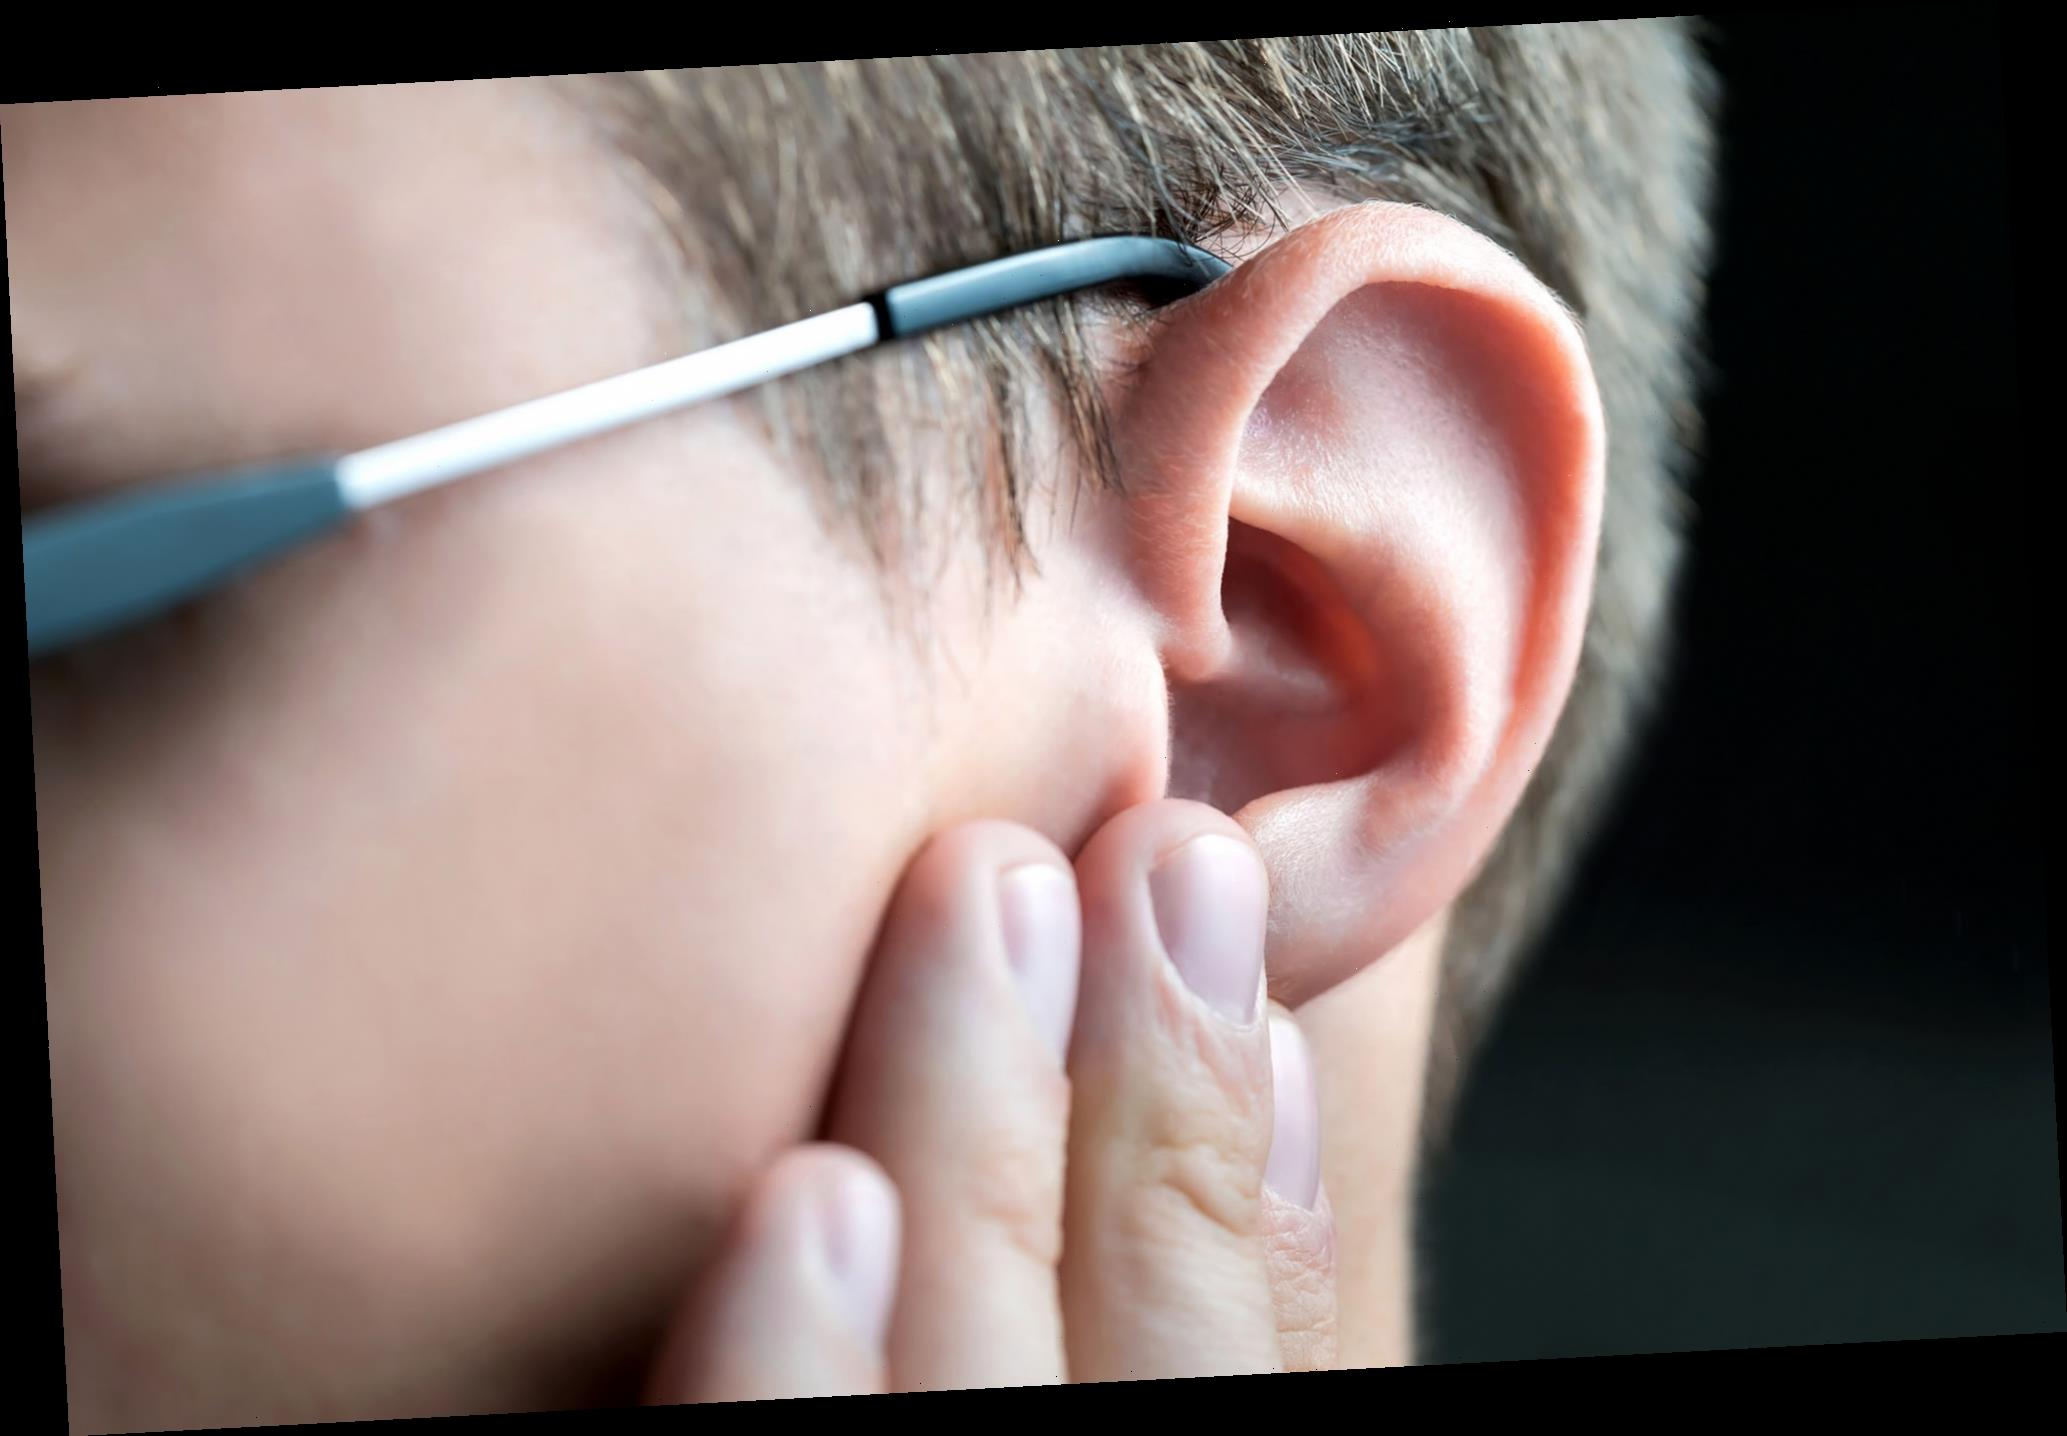 New earwax test could reveal stress levels and depression risk